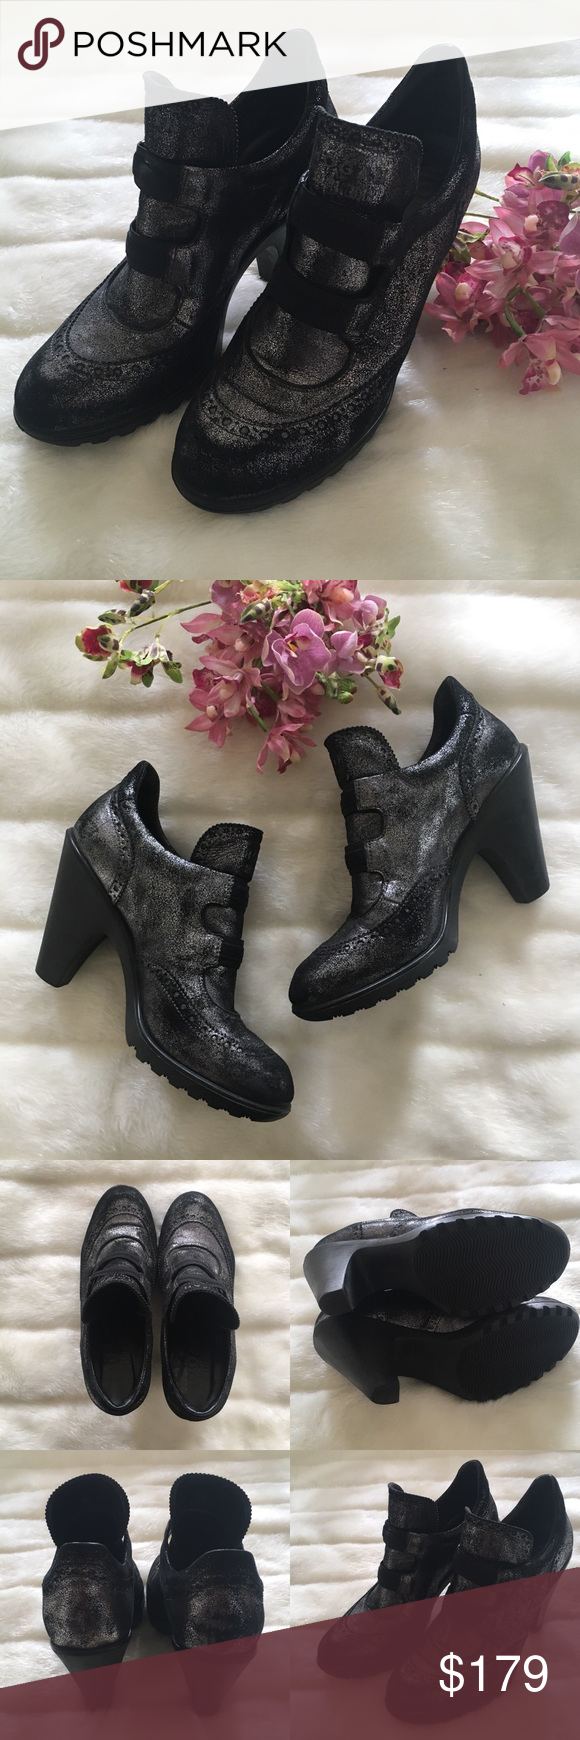 Karl Lagerfeld Shoes | Hogan Karl Lagerfeld Ankle Boots 38